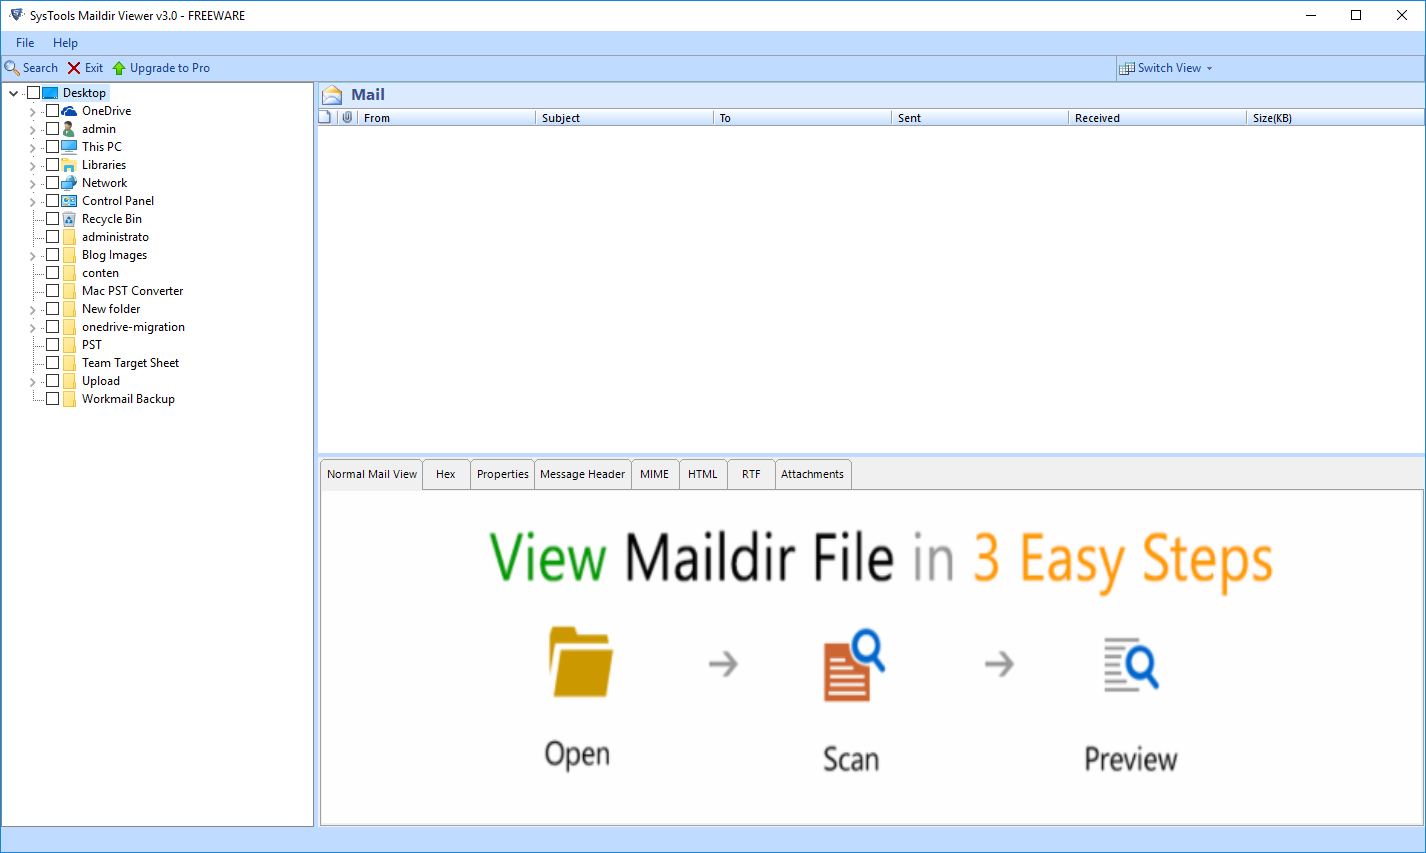 Run Maildir Viewer Tool